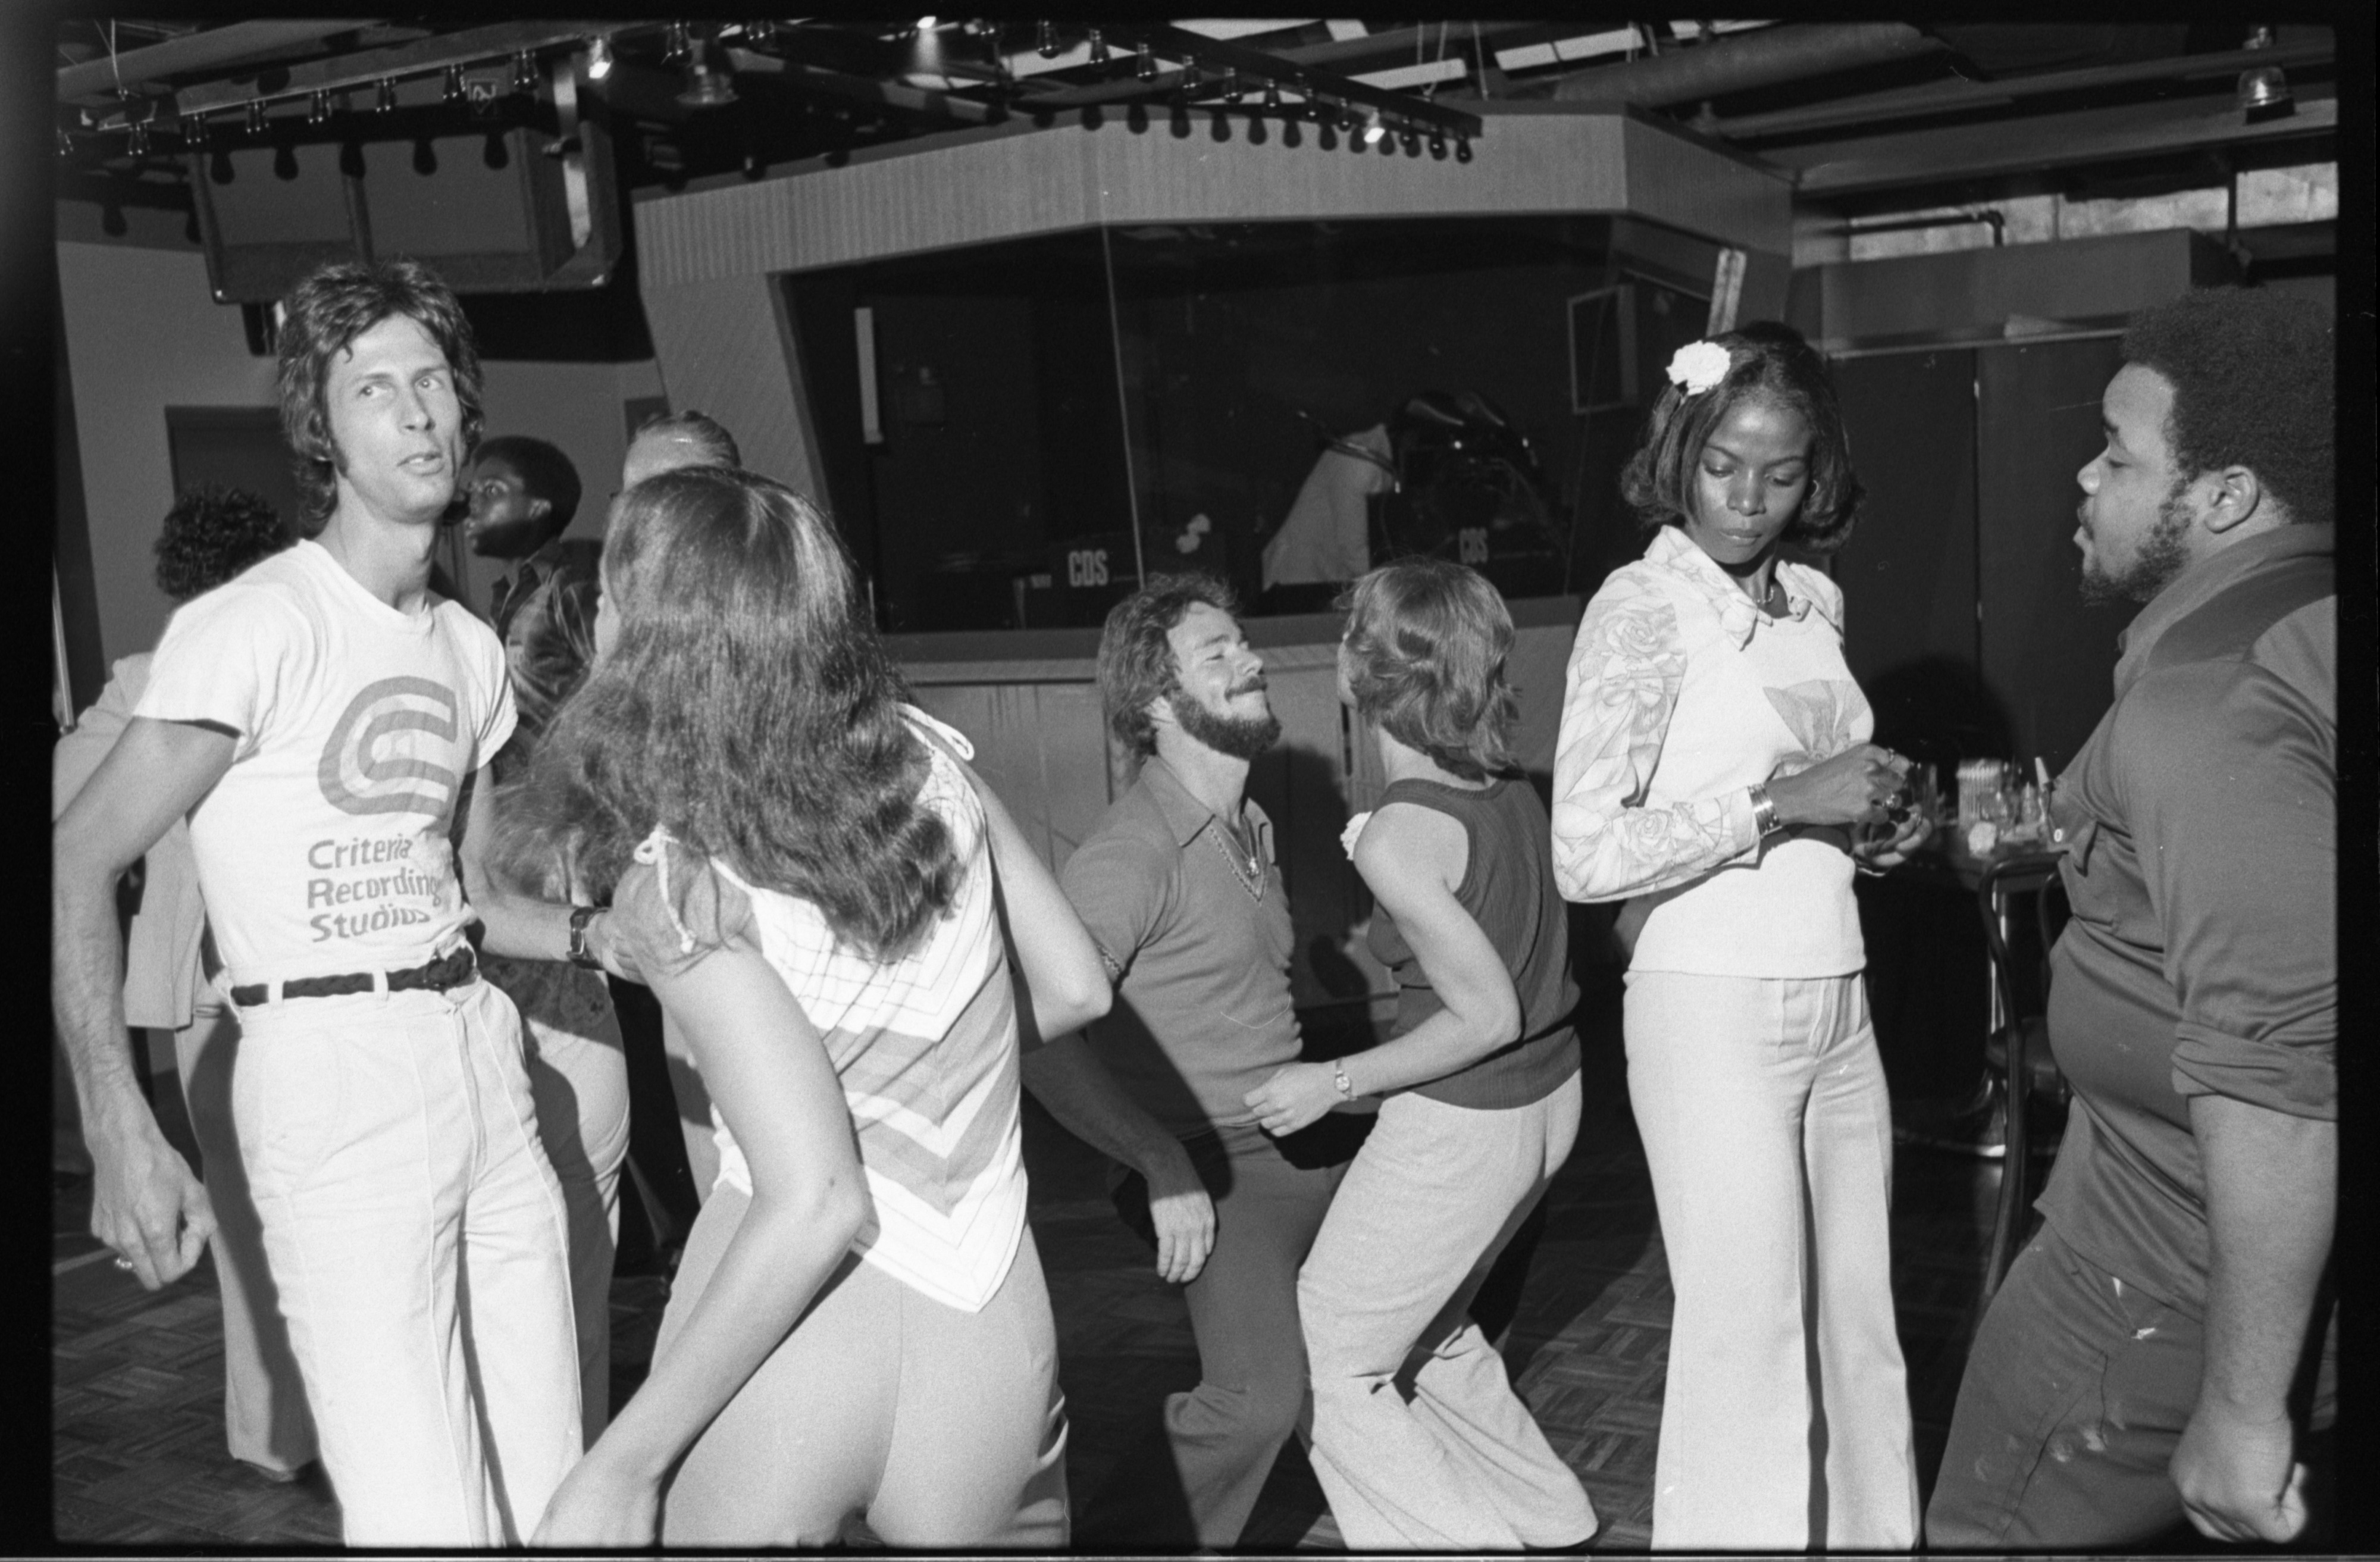 Disco Dancing at The Blue Frogge, August 1976 image